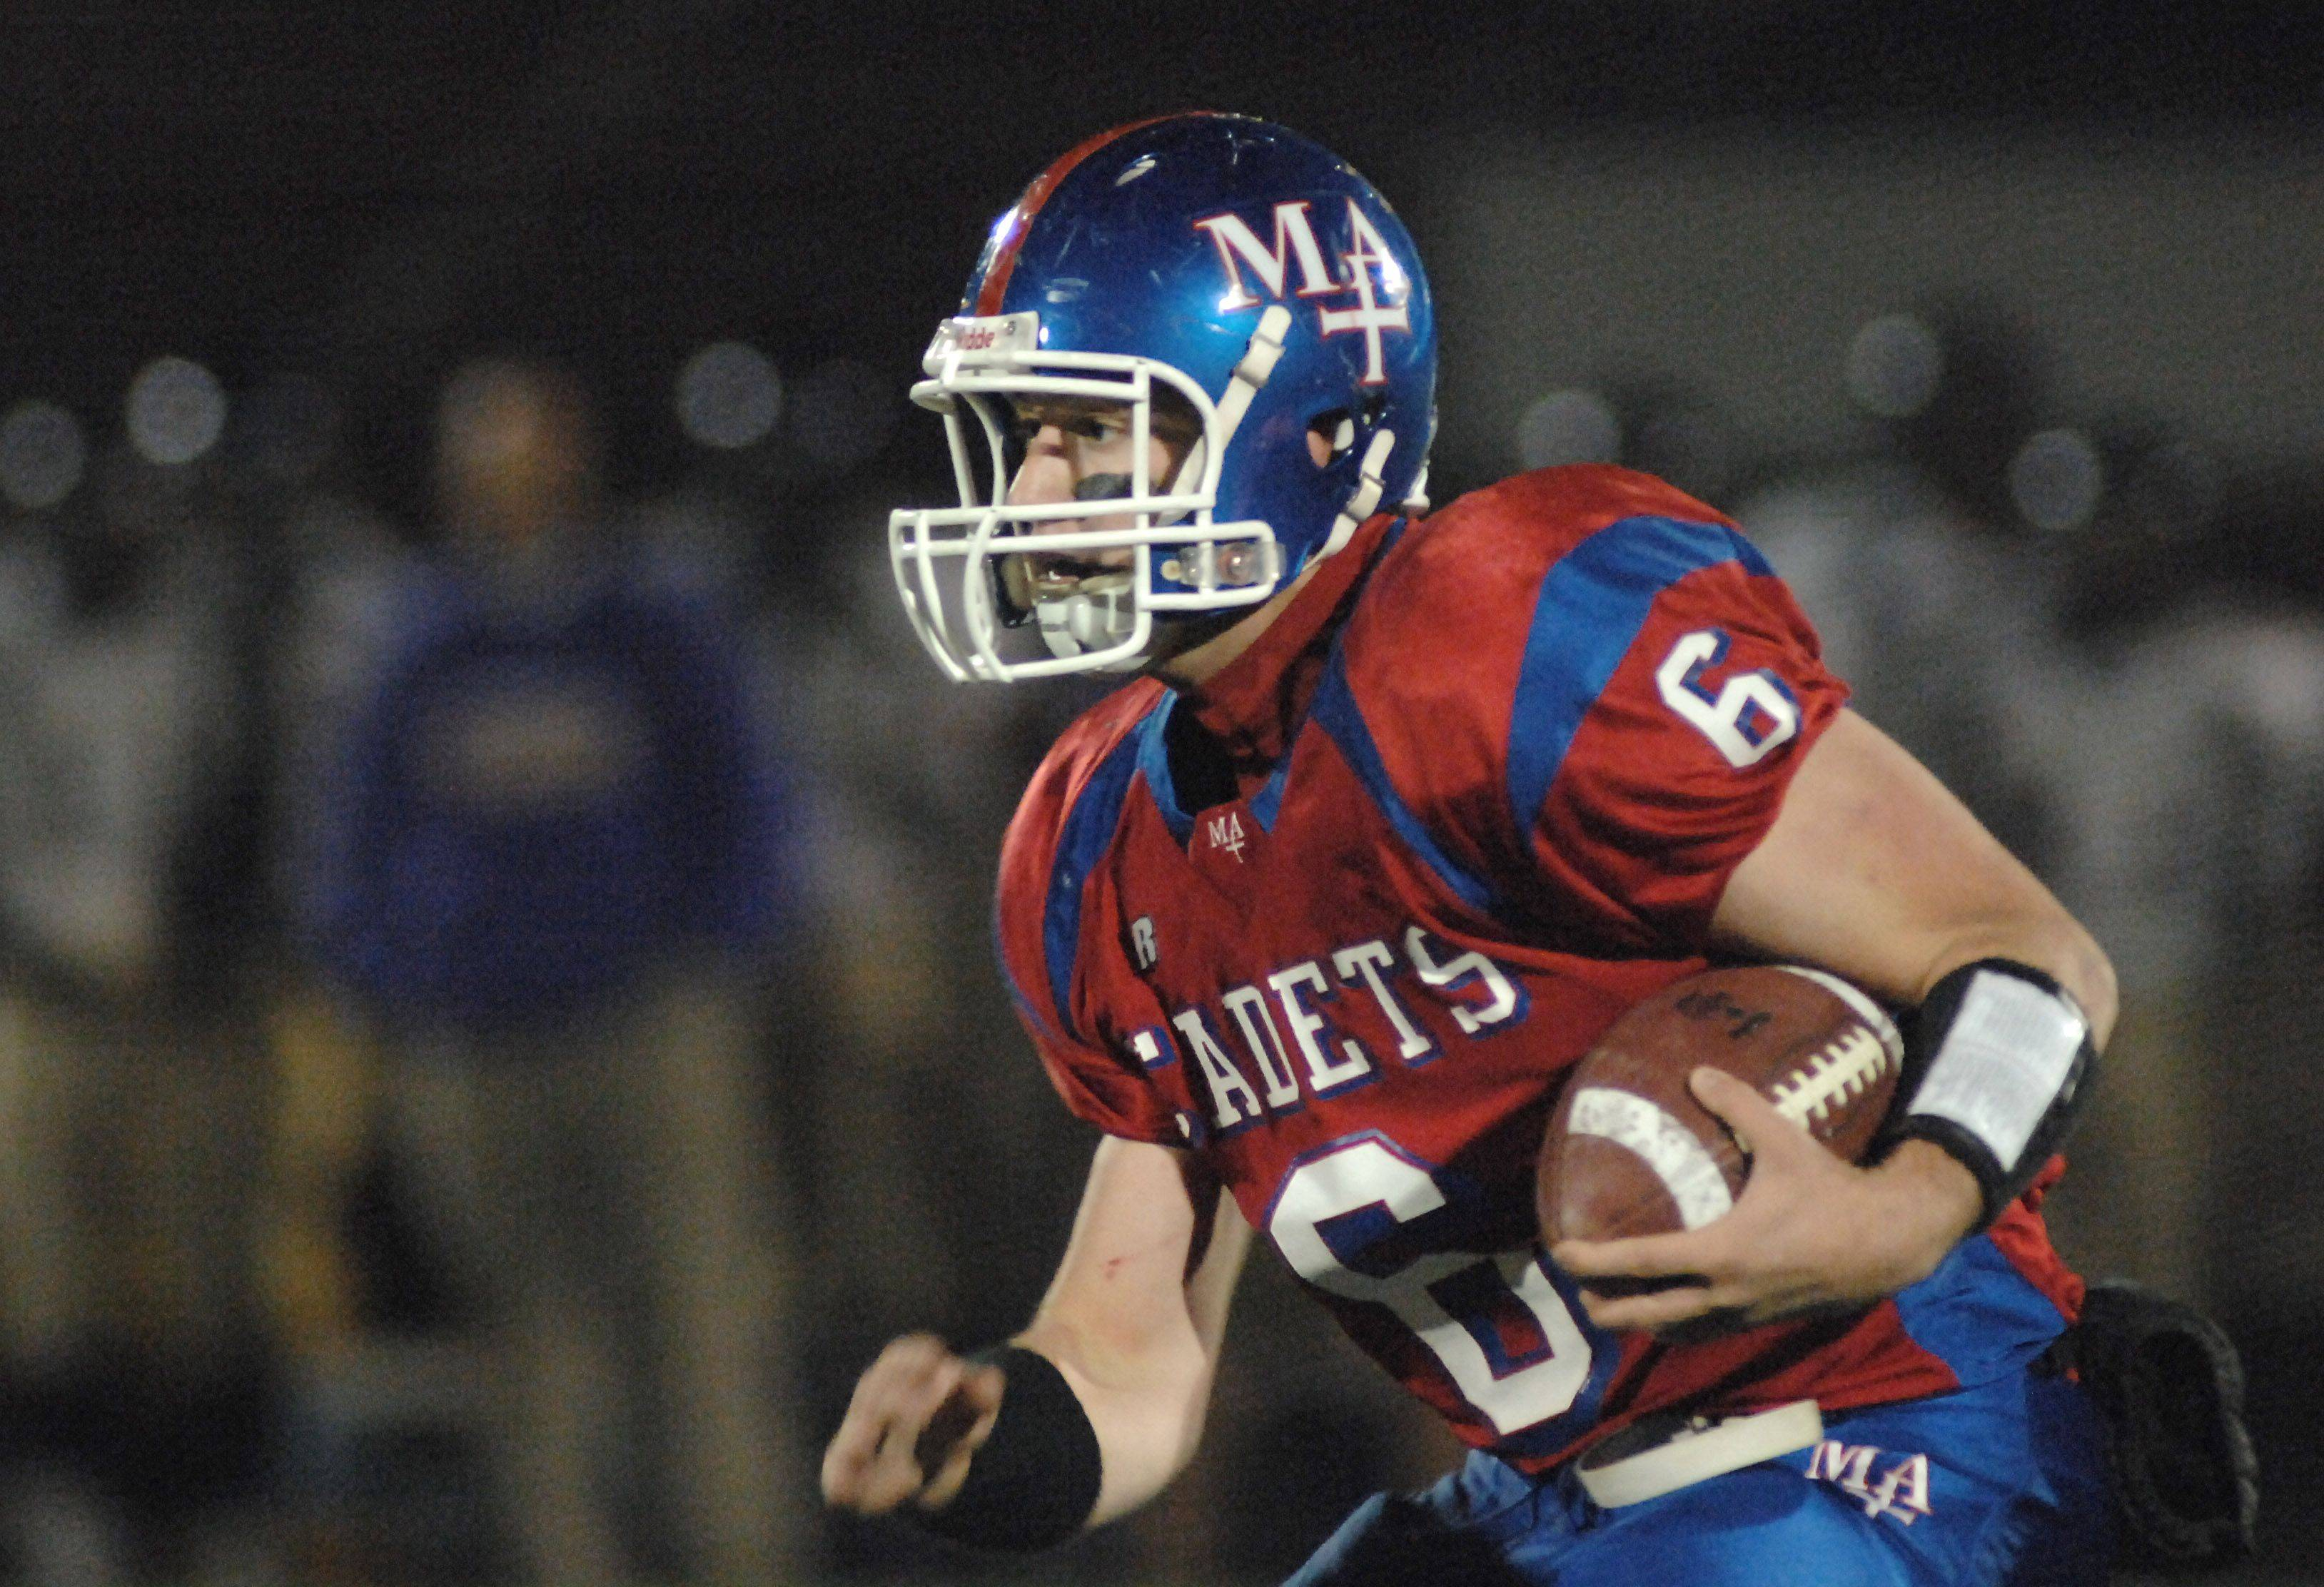 Marmion's Mike Carbonara makes a run in the first quarter of game vs Thorton Fractional North on Friday, October 29.